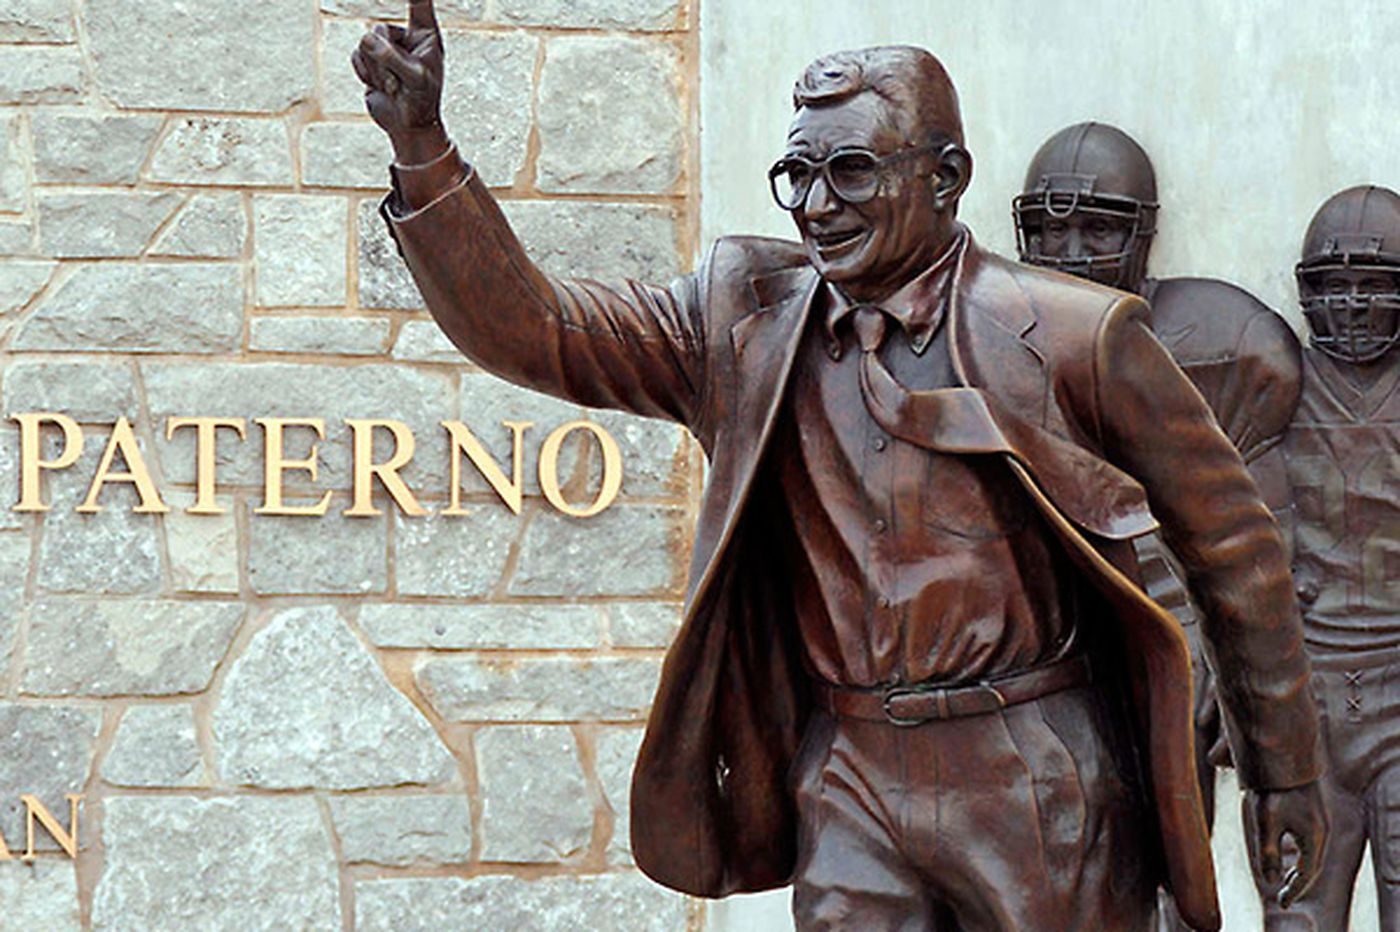 Penn State says it has settled all claims with the family of Joe Paterno